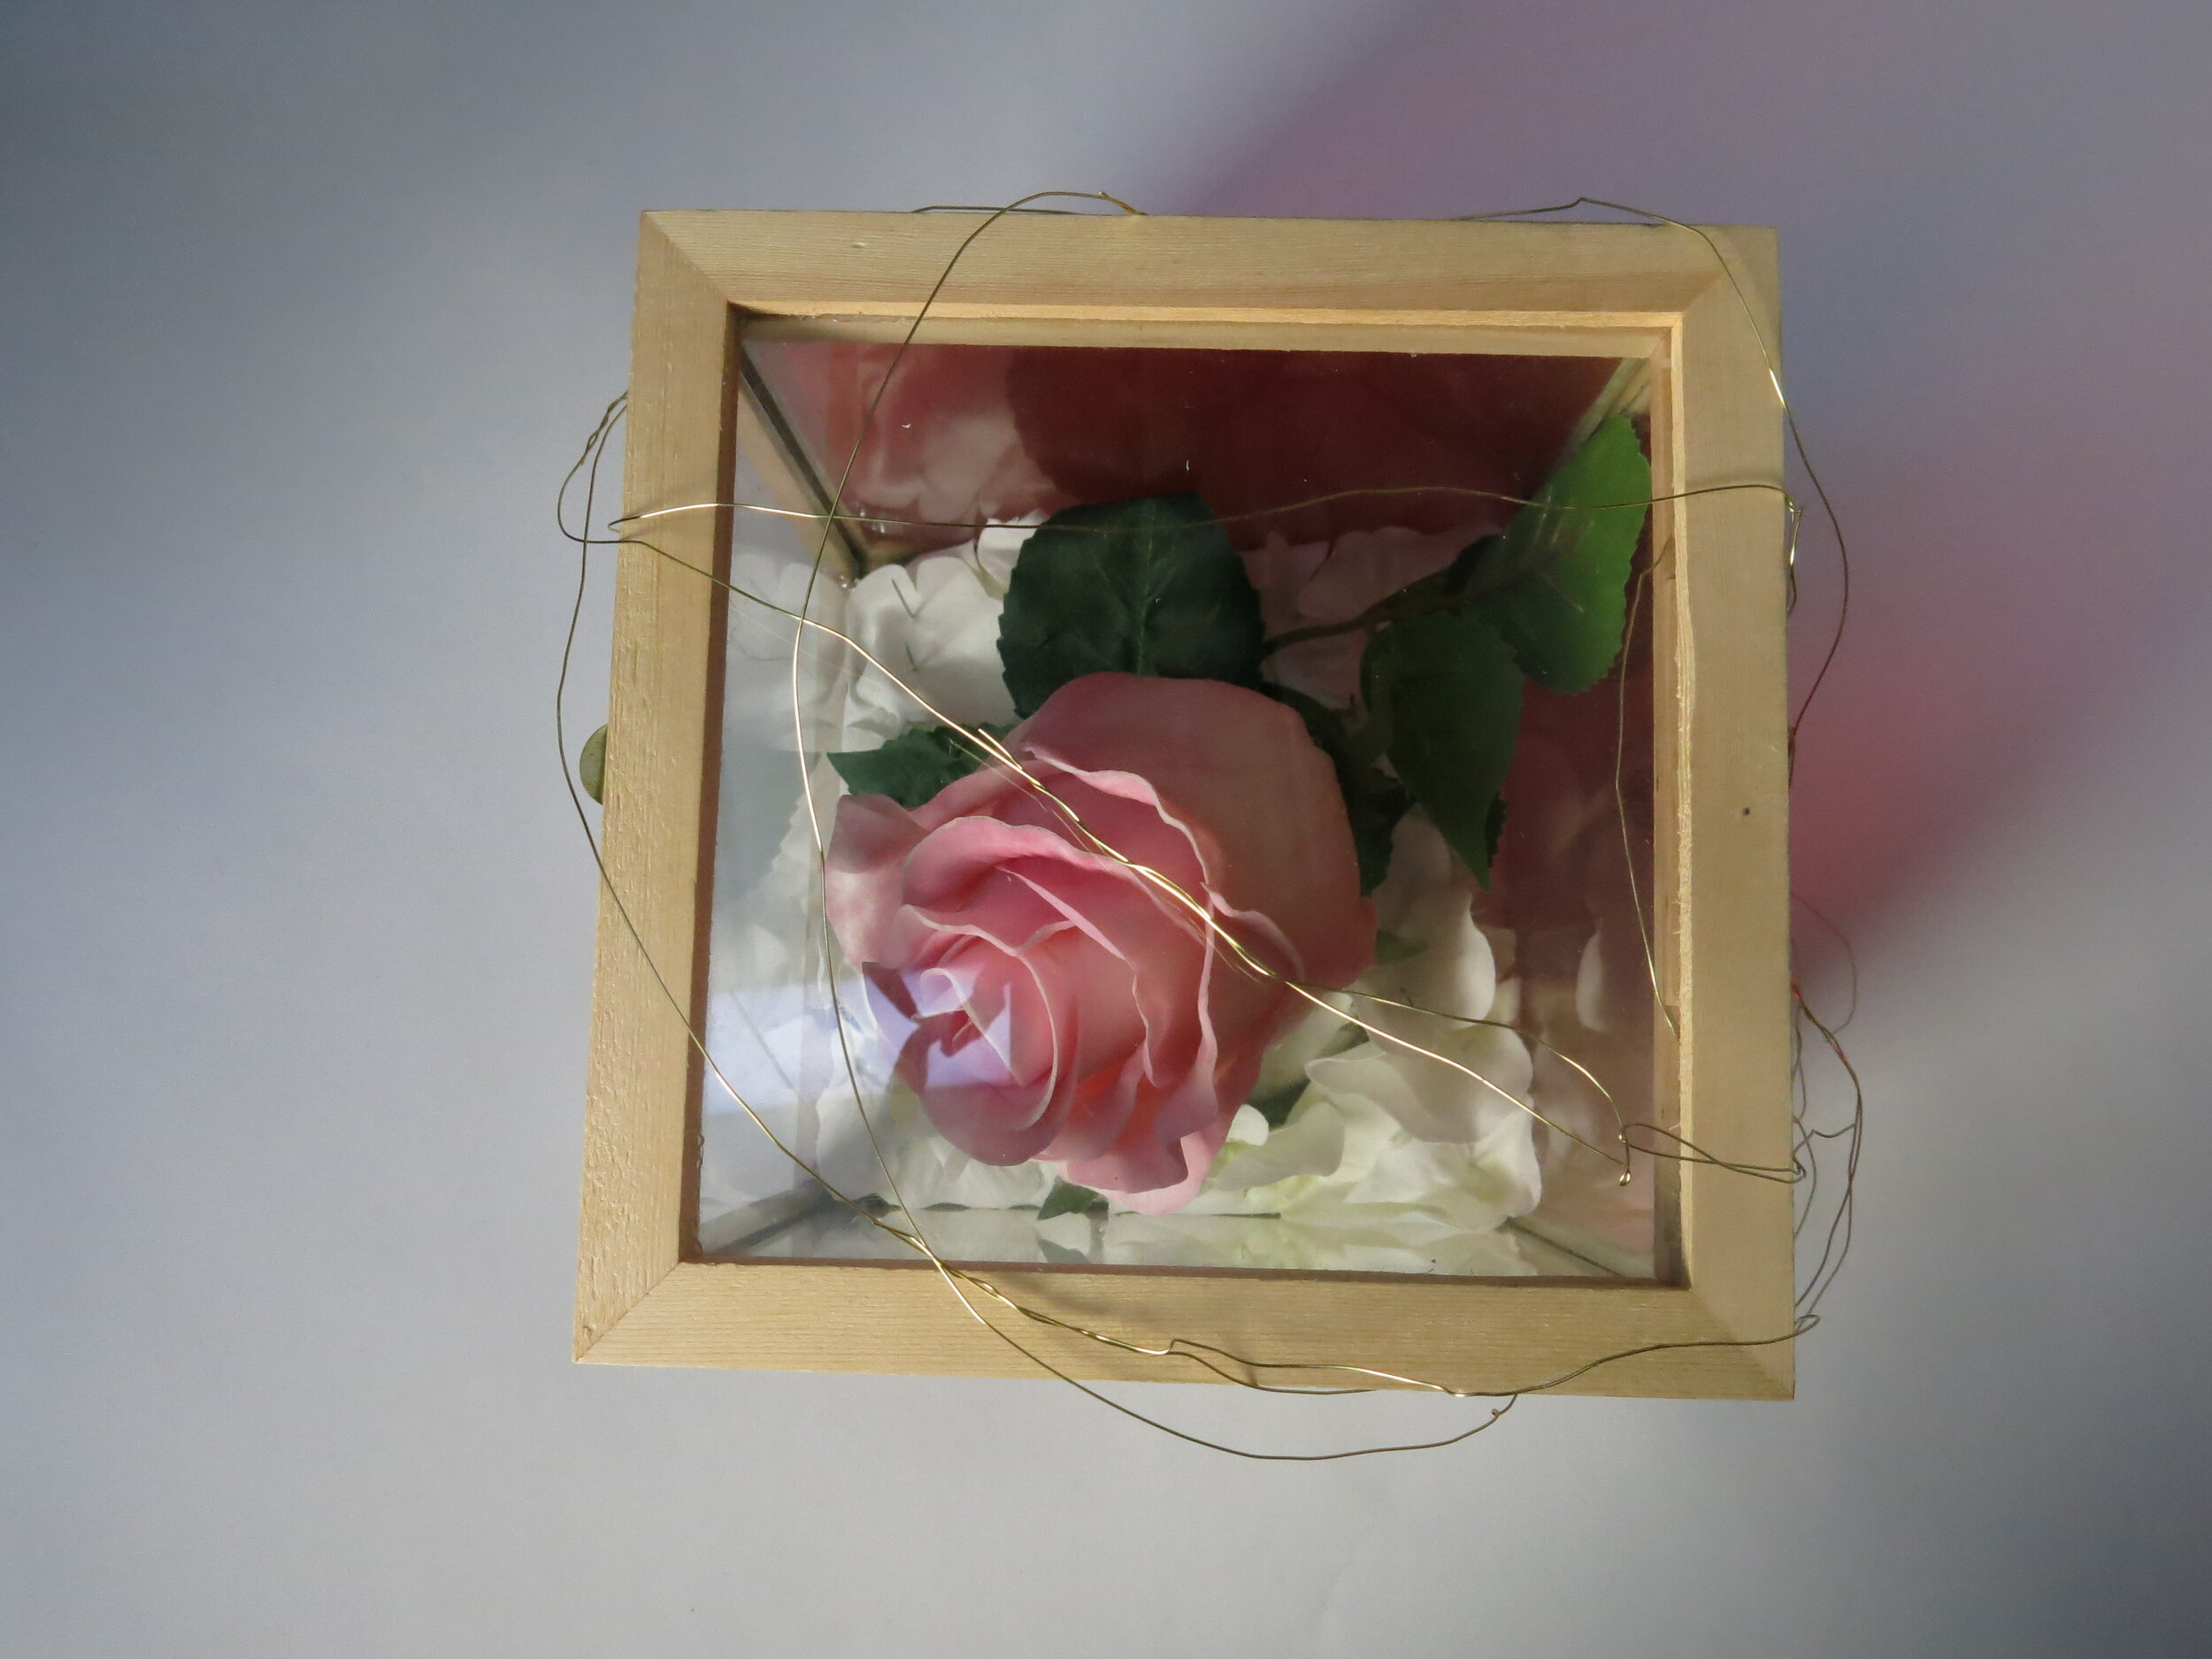 The pink rose is a metaphor to symbolize the bunker people live in, where they believed is the safe place distant from the outside world (I.e. their comfort zone).